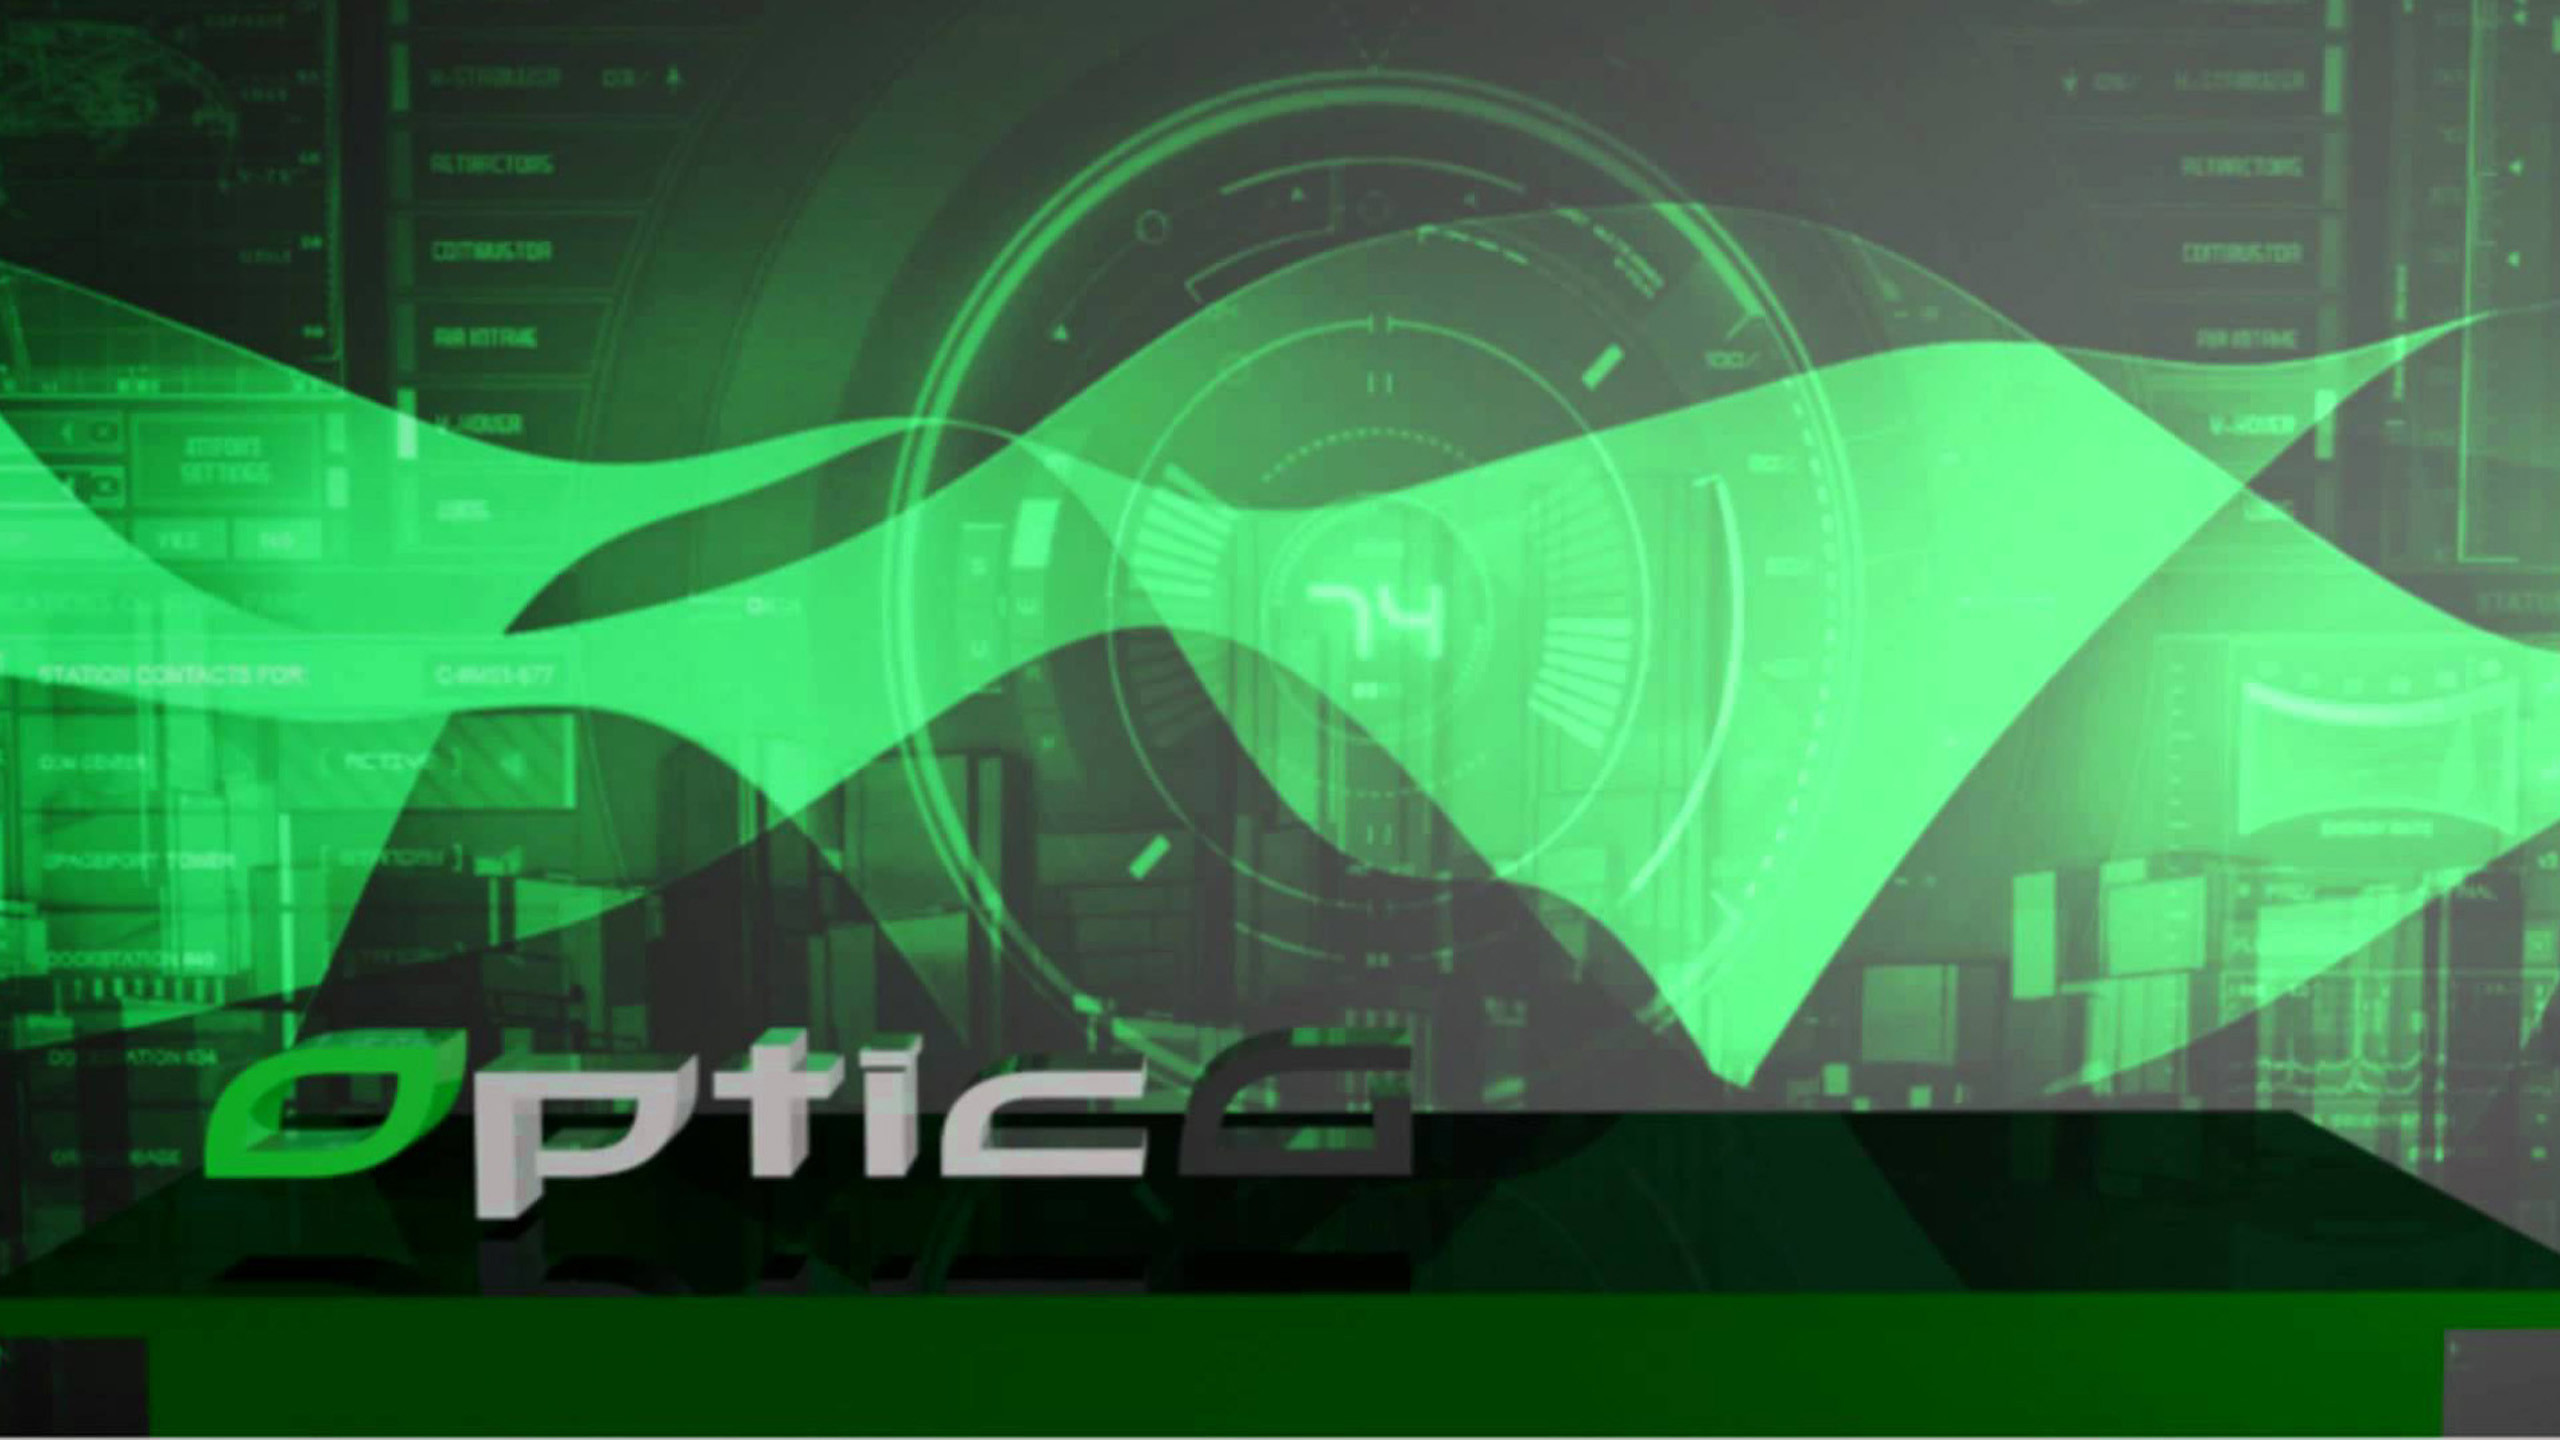 Res: 2560x1440, optic gaming wallpaper photos hd wallpapers high definition amazing cool  desktop wallpapers for windows tablet download free 2560×1440 Wallpaper HD